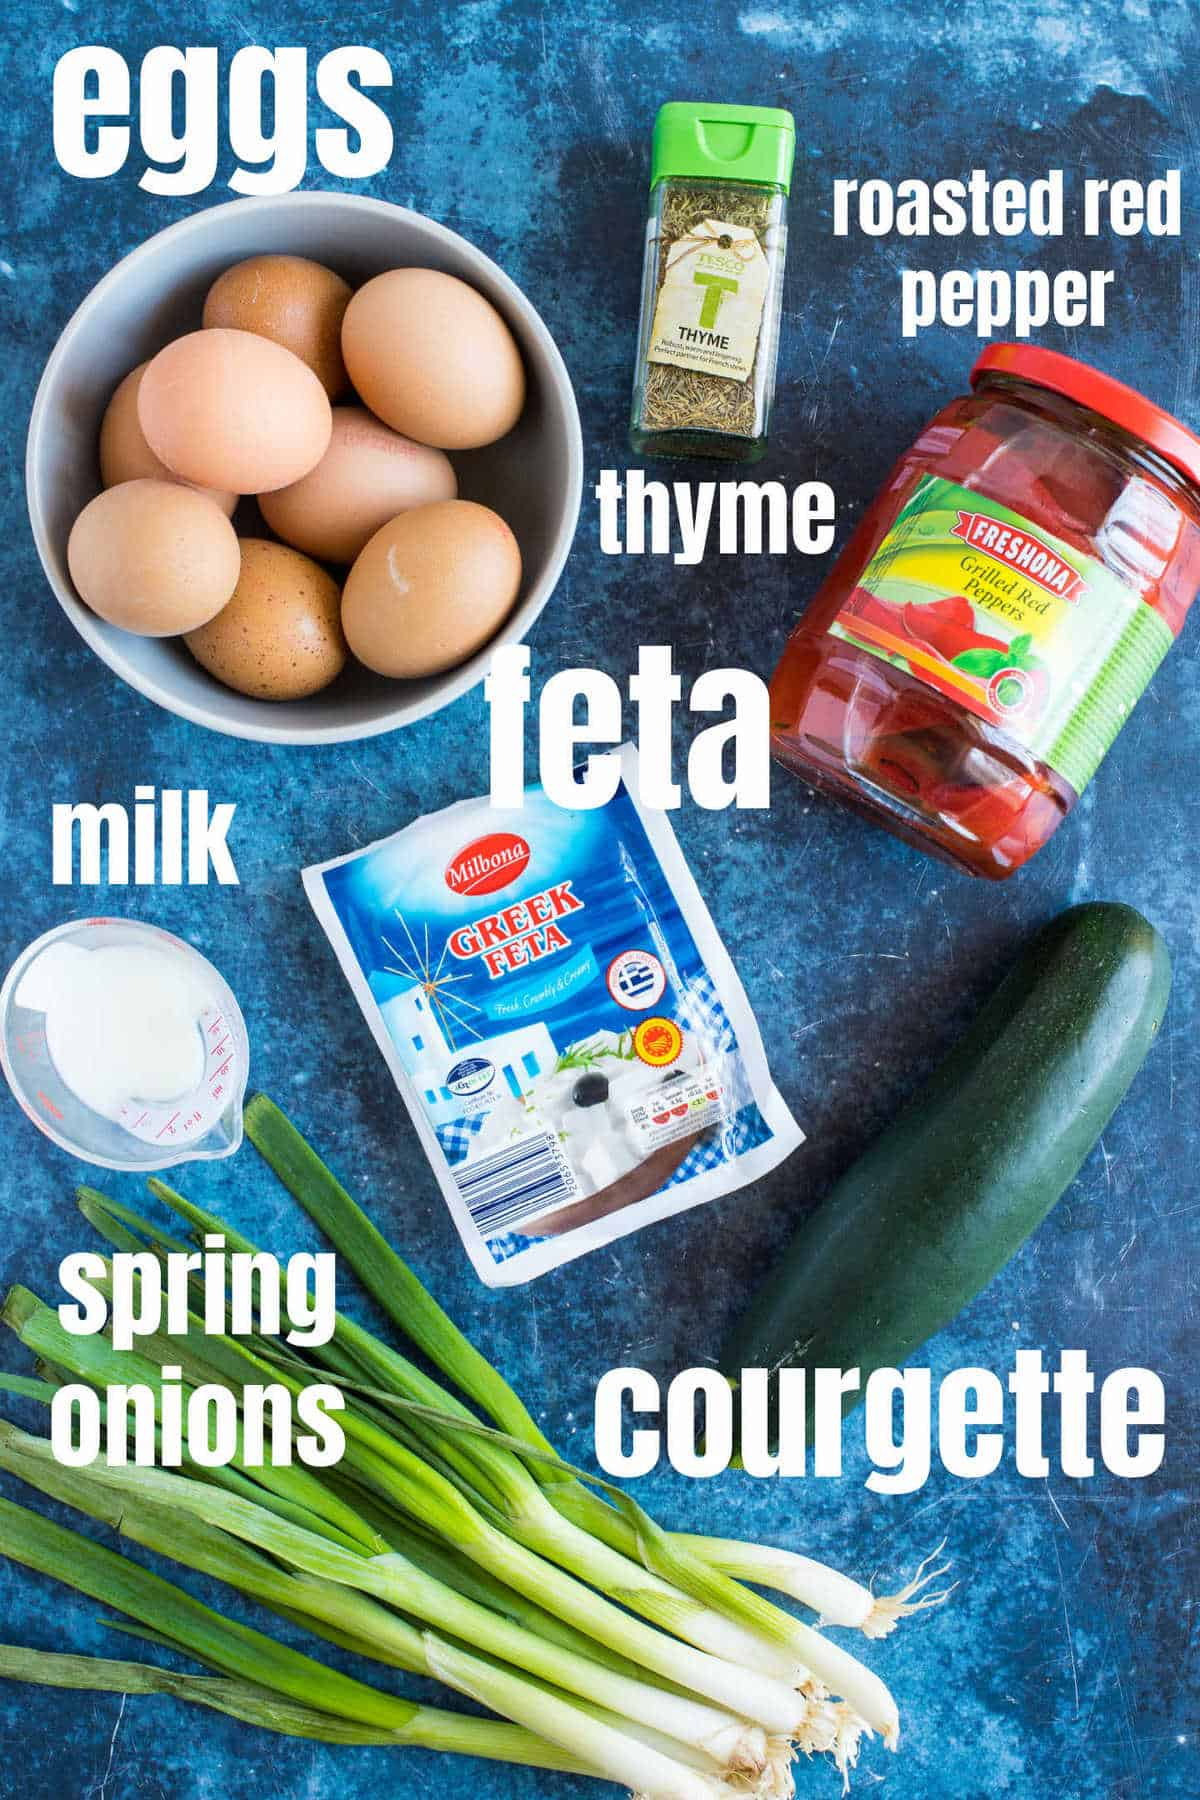 Ingredients for the courgette and feta frittata.